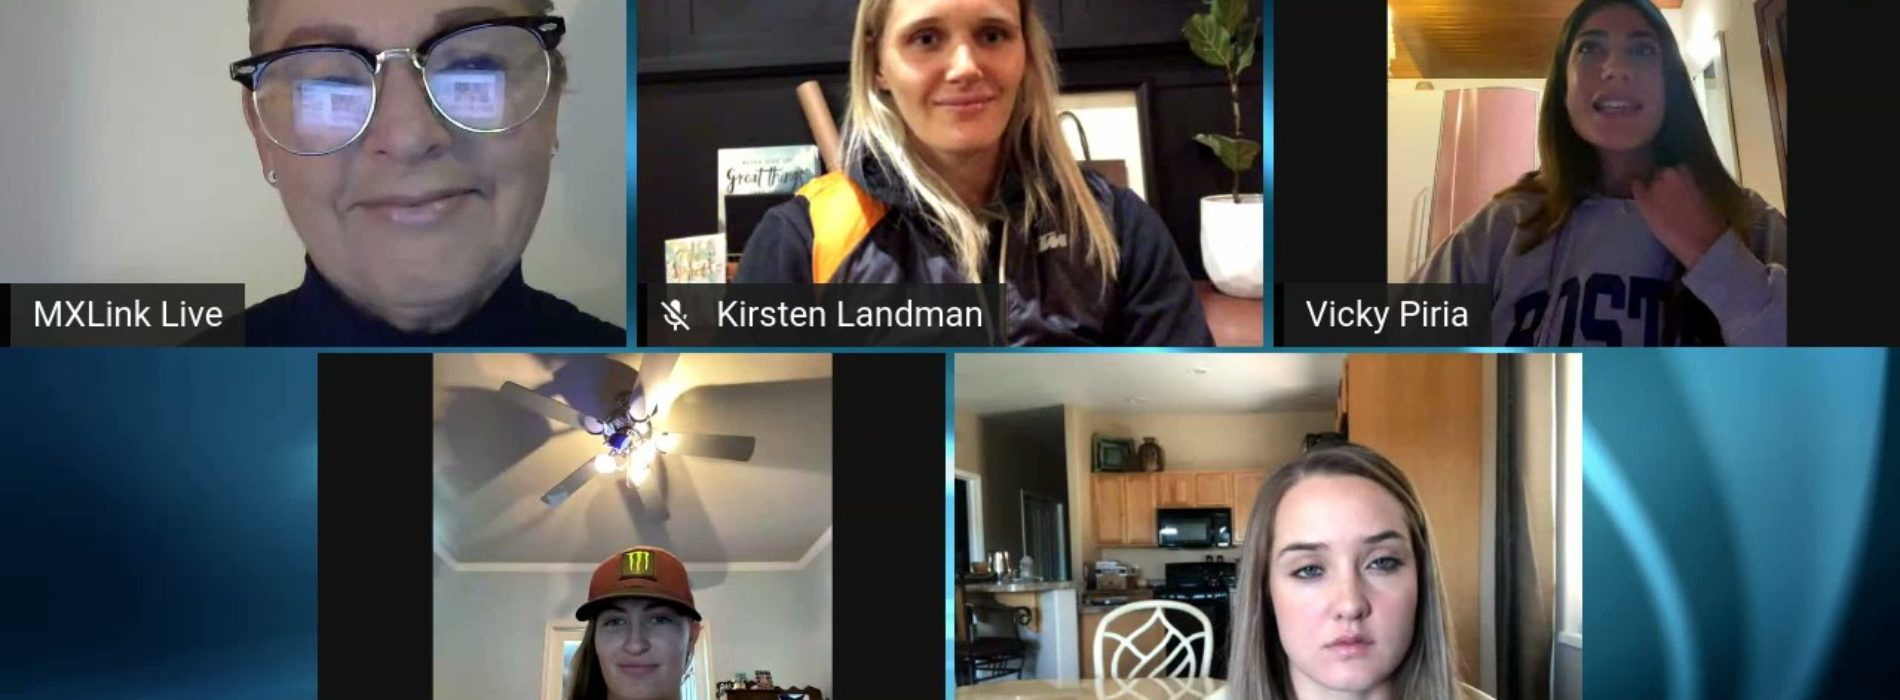 MXLink Live speaks with Women in Motorsport on financial challenges past and present day